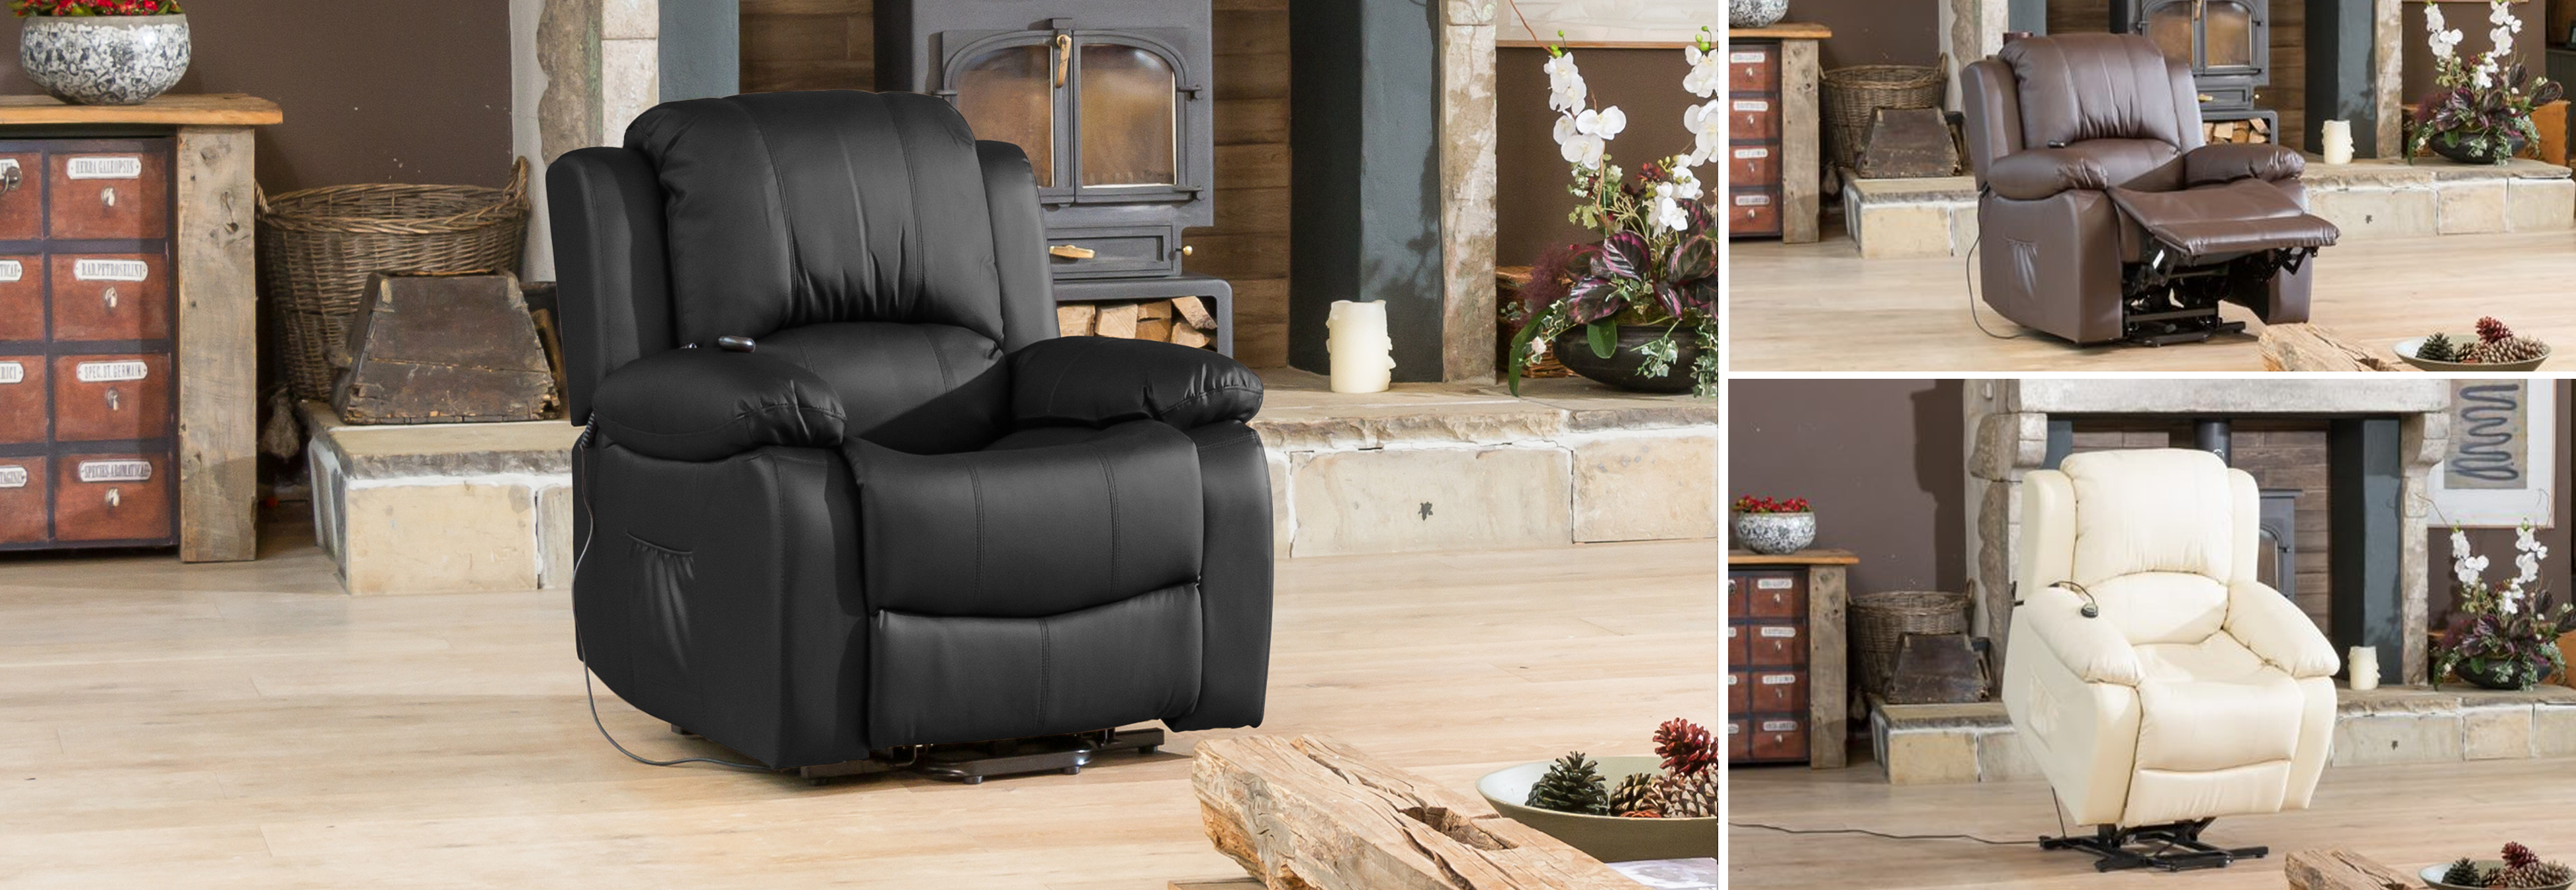 Burghley Riser Recliner with Massage and Heat black